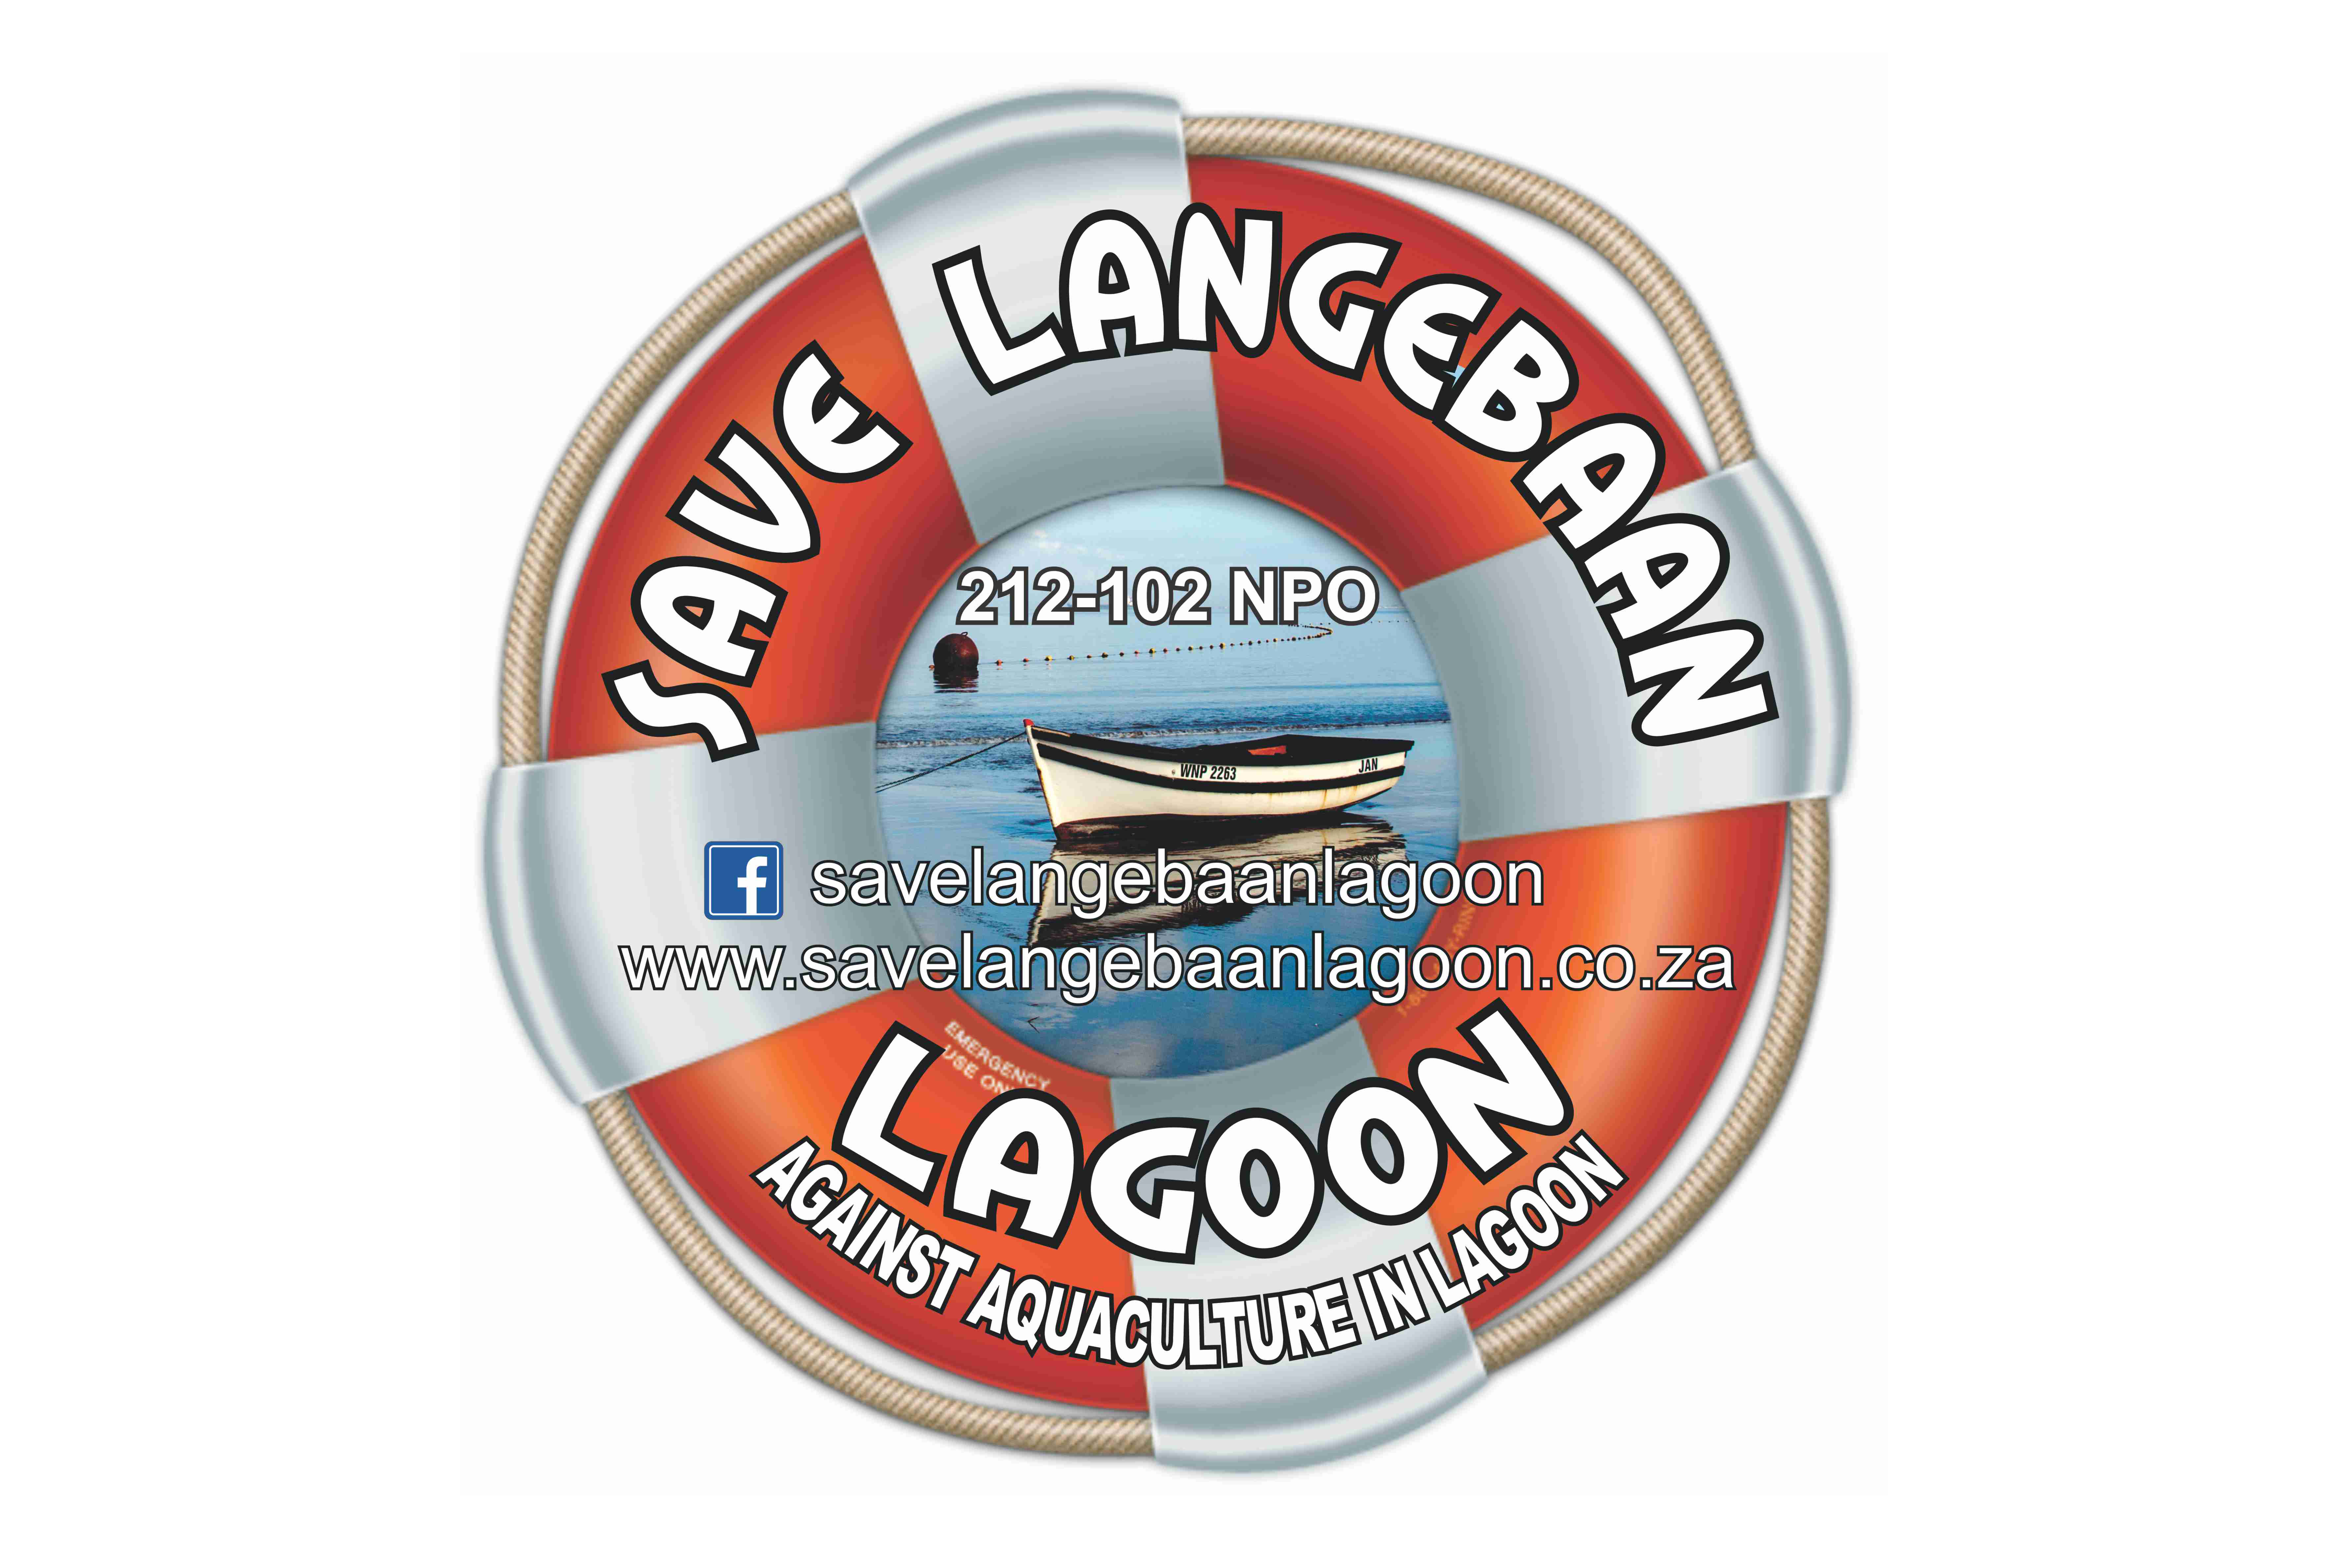 Save Langebaan LOGO 4x6